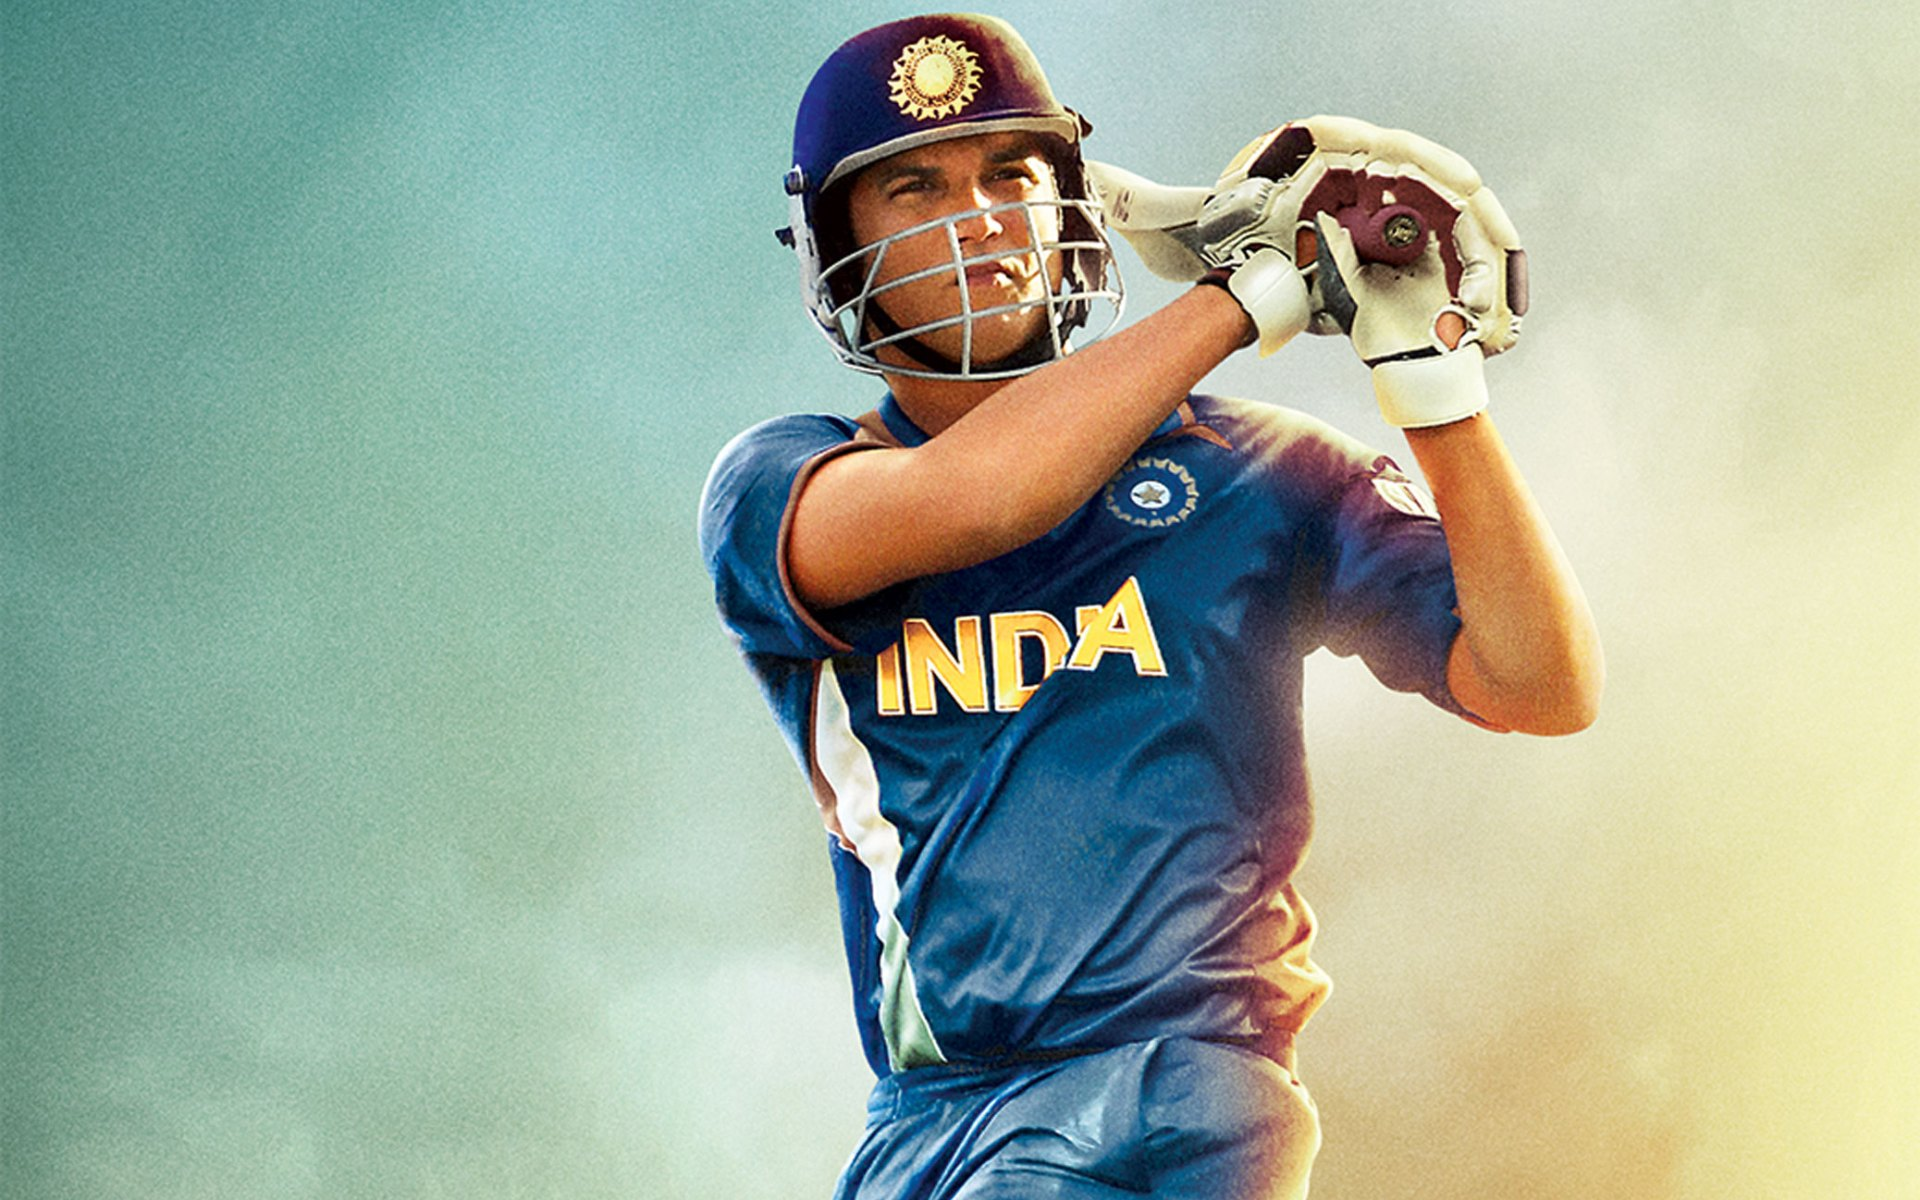 Great Wallpaper Logo Rajput - sushant_singh_rajput_hits_a_six_m_s_dhoni_the_untold_story-wide  Graphic_376542.jpg